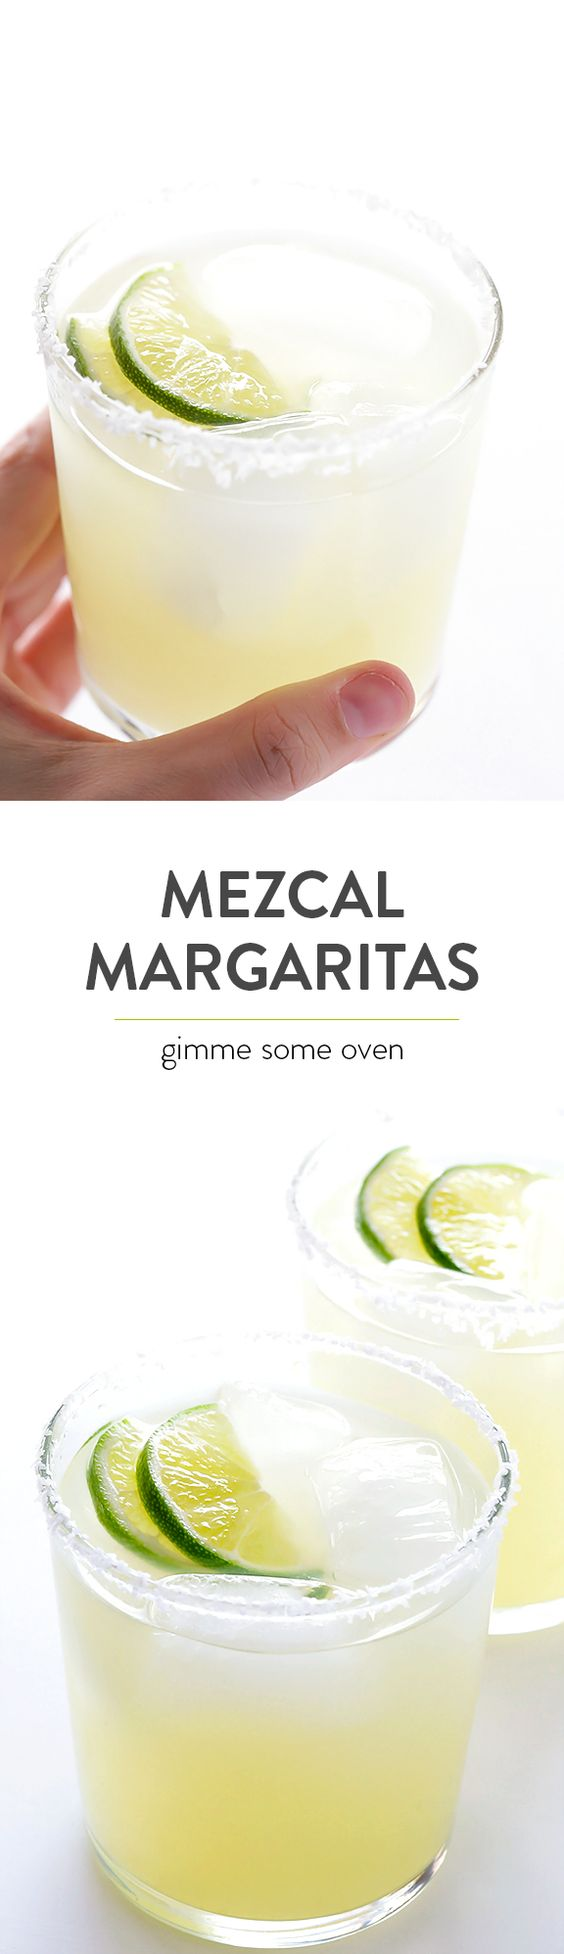 Mezcal Margaritas -- kick your margs up a notch with some smoky mezcal ...